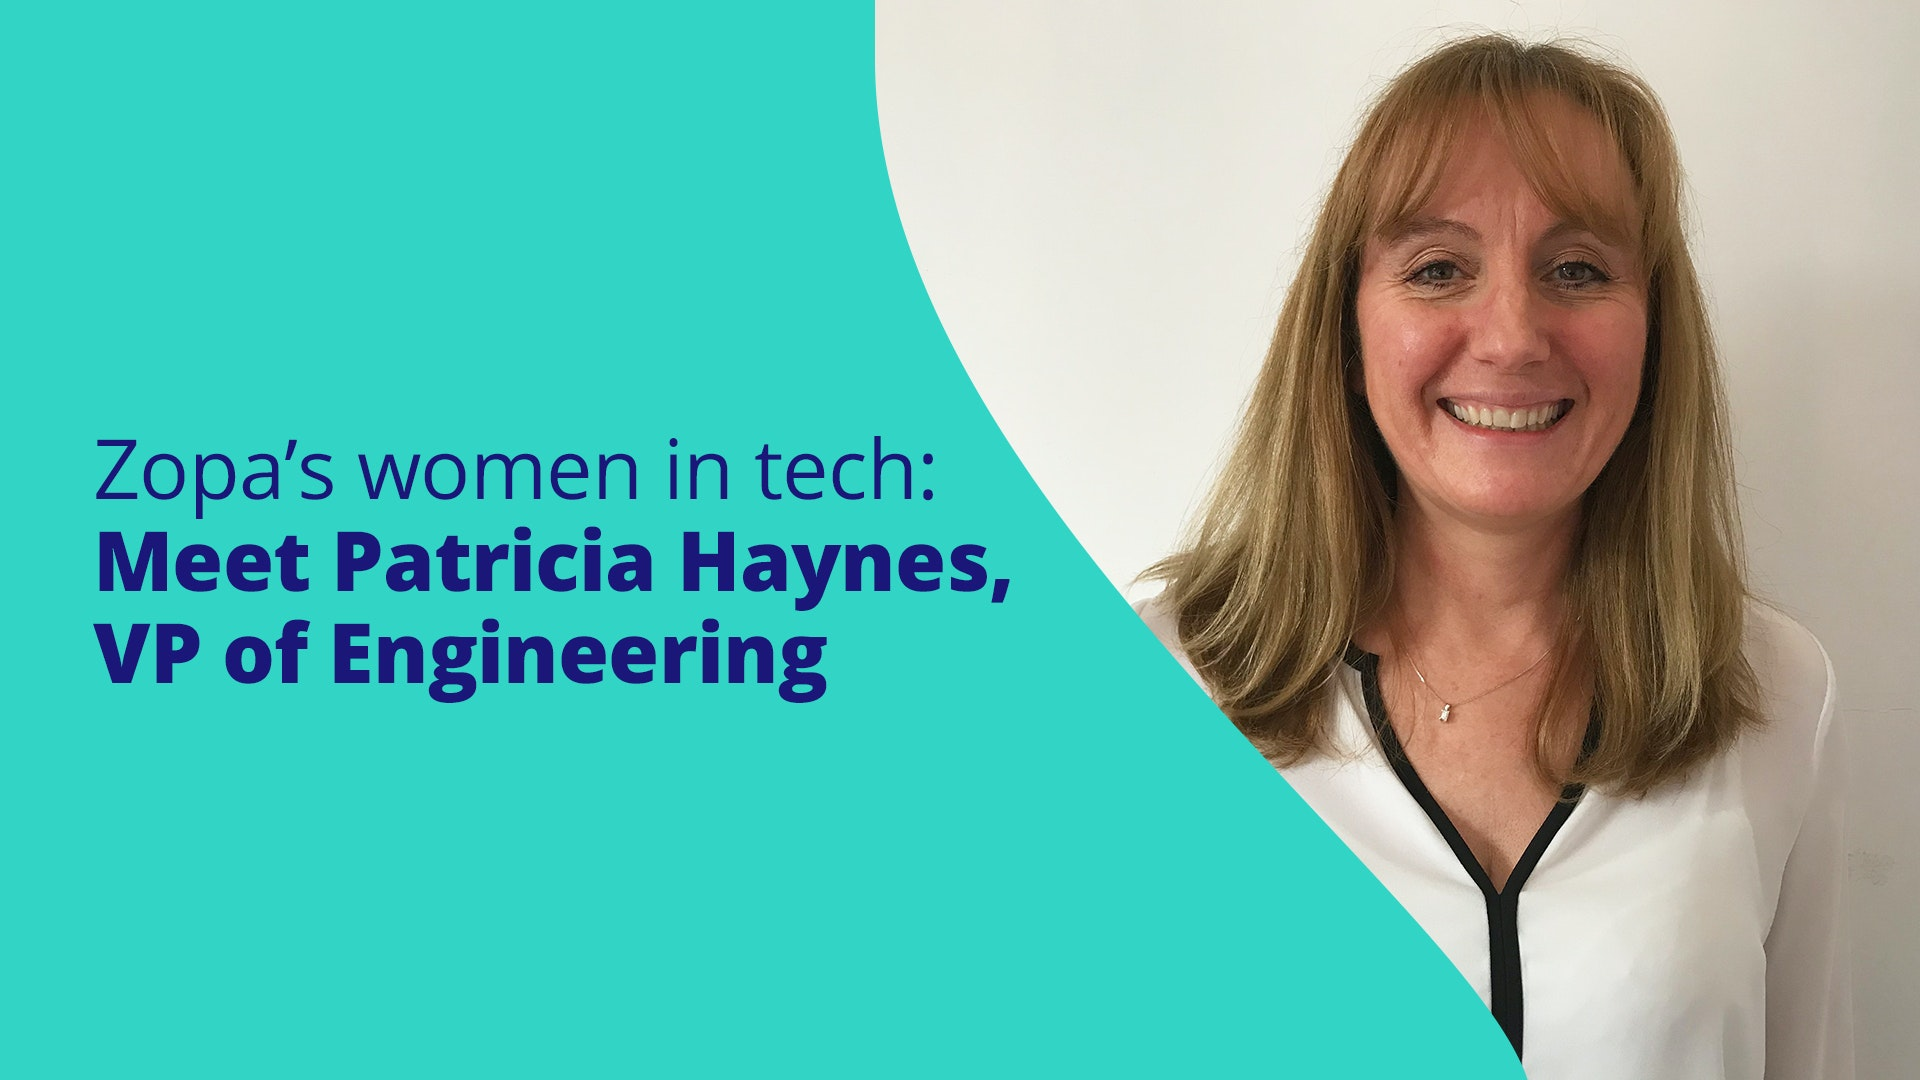 zopa-s-women-in-tech-meet-patricia-haynes-vp-of-engineering